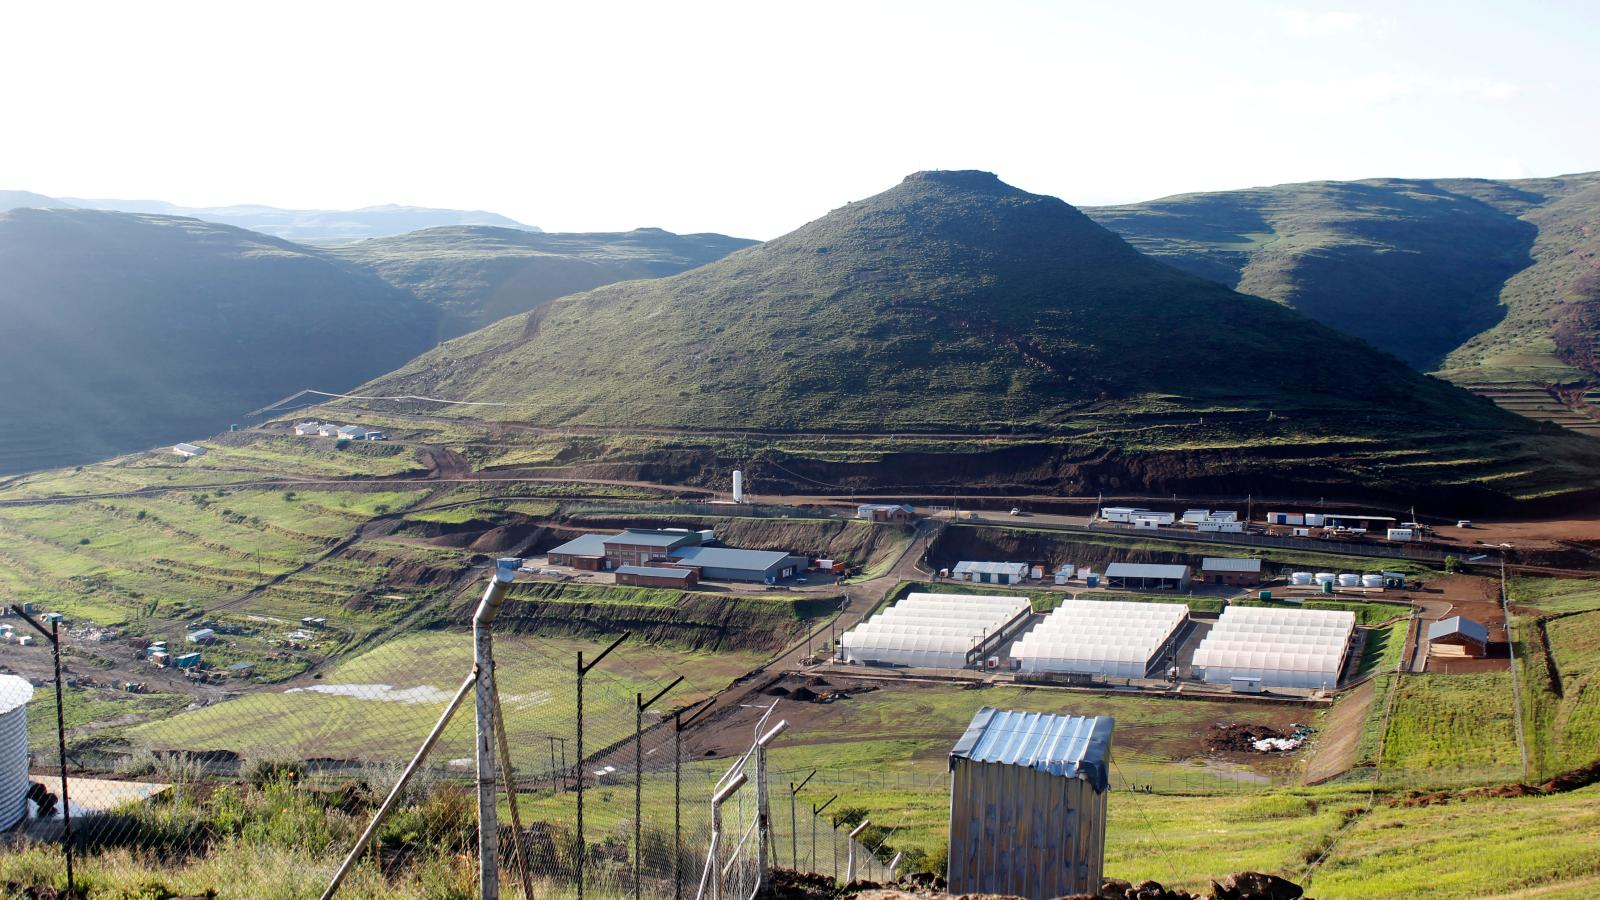 Lesotho is perfect growing cannabis but not regulation — Quartz Africa